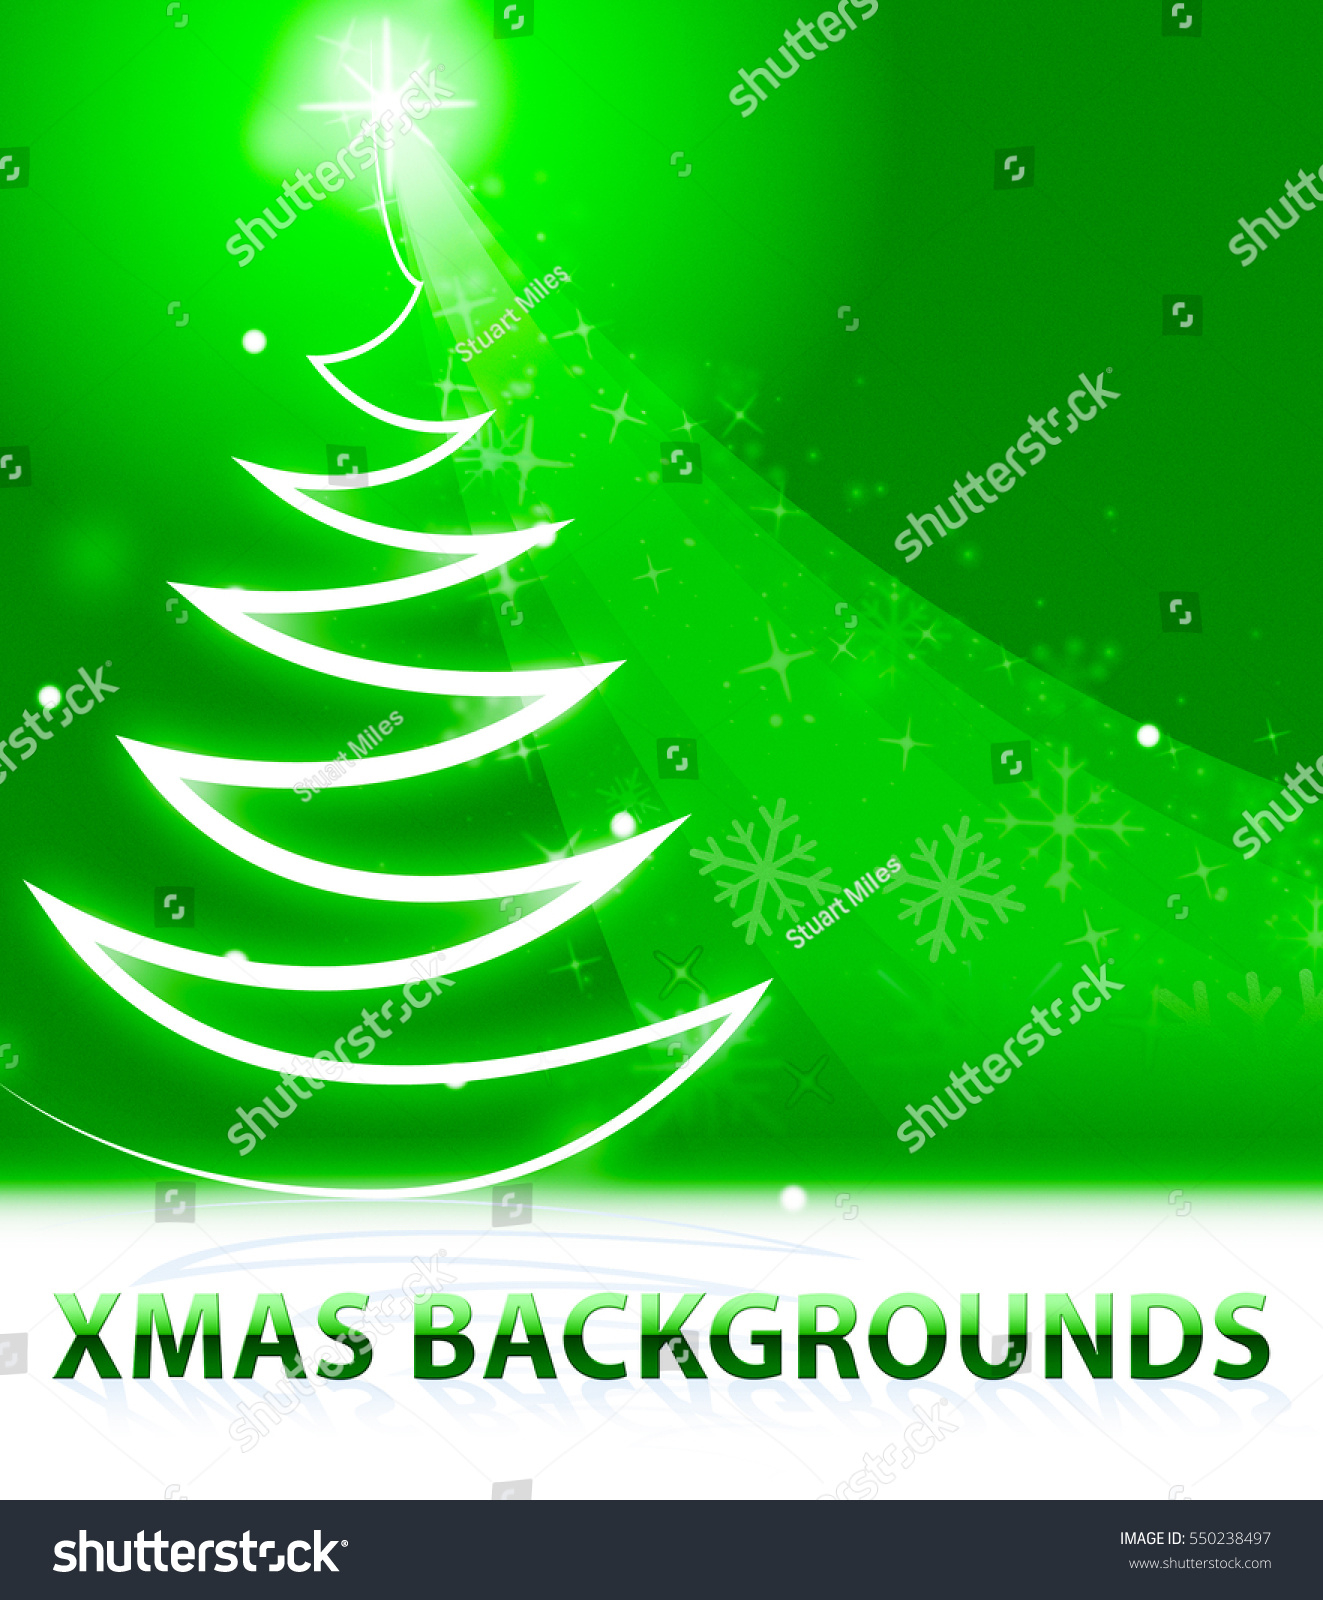 xmas backgrounds snow scene shows xmas stock illustration 550238497